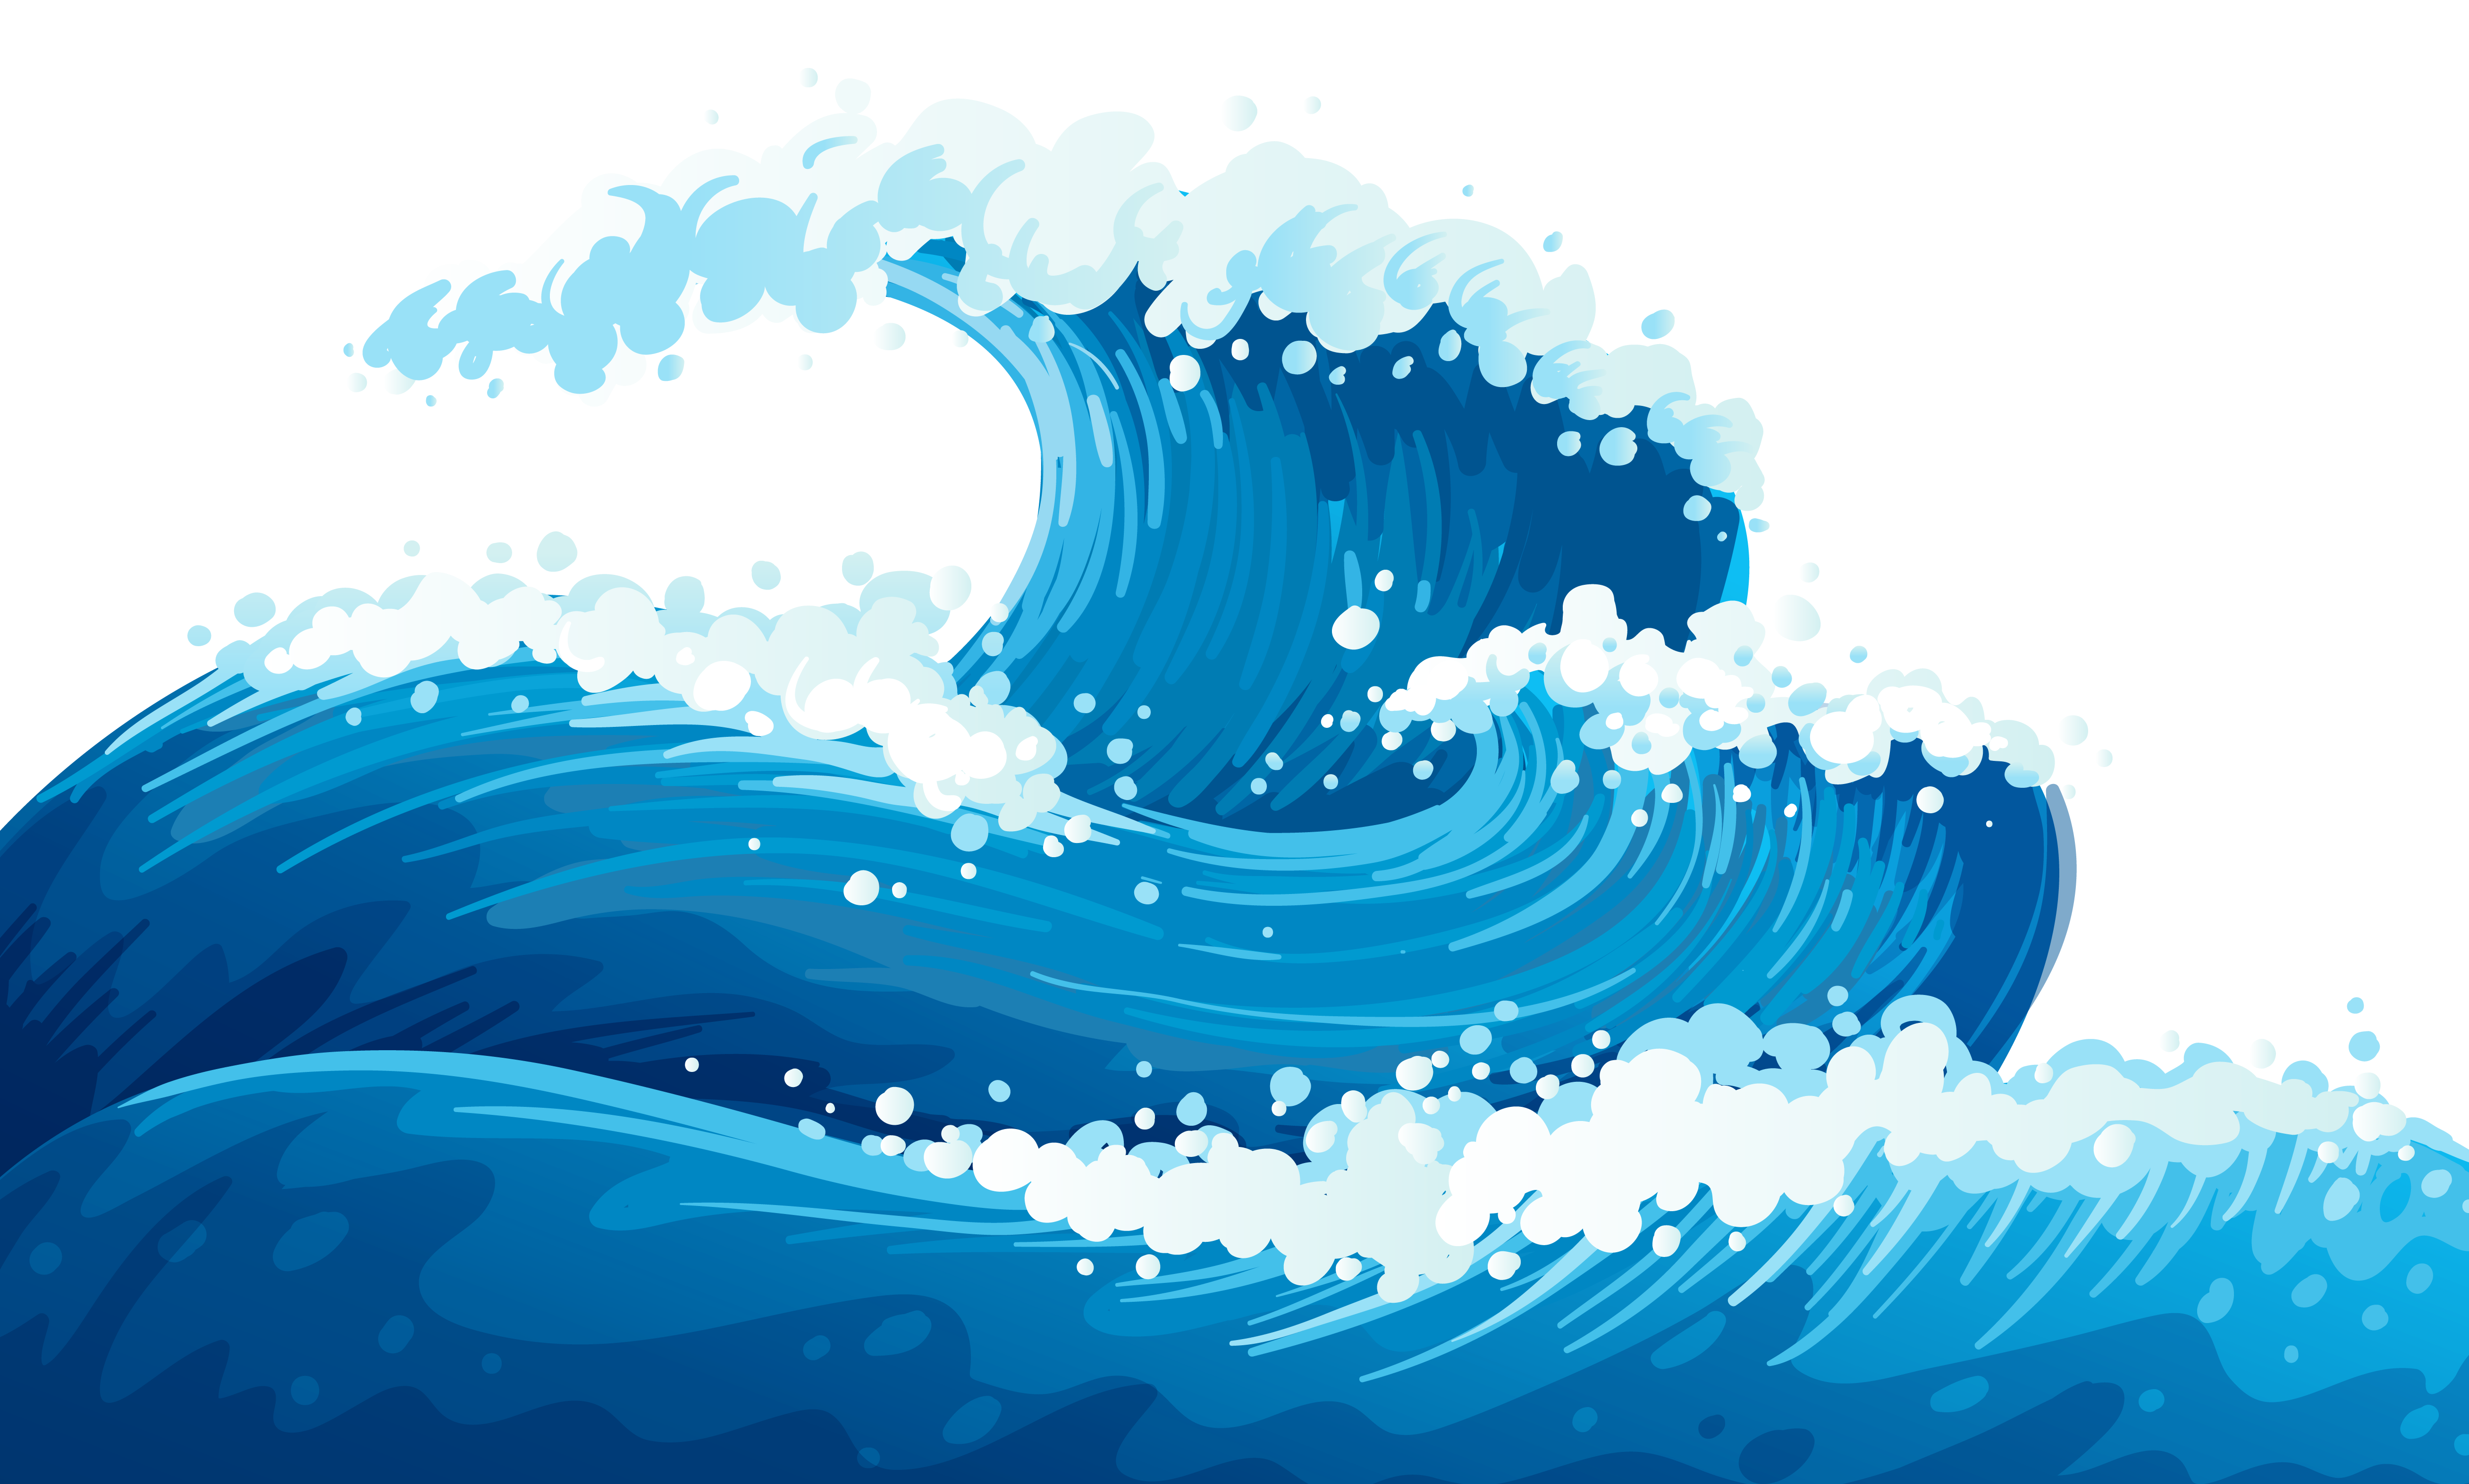 Sea clipart #2, Download drawings